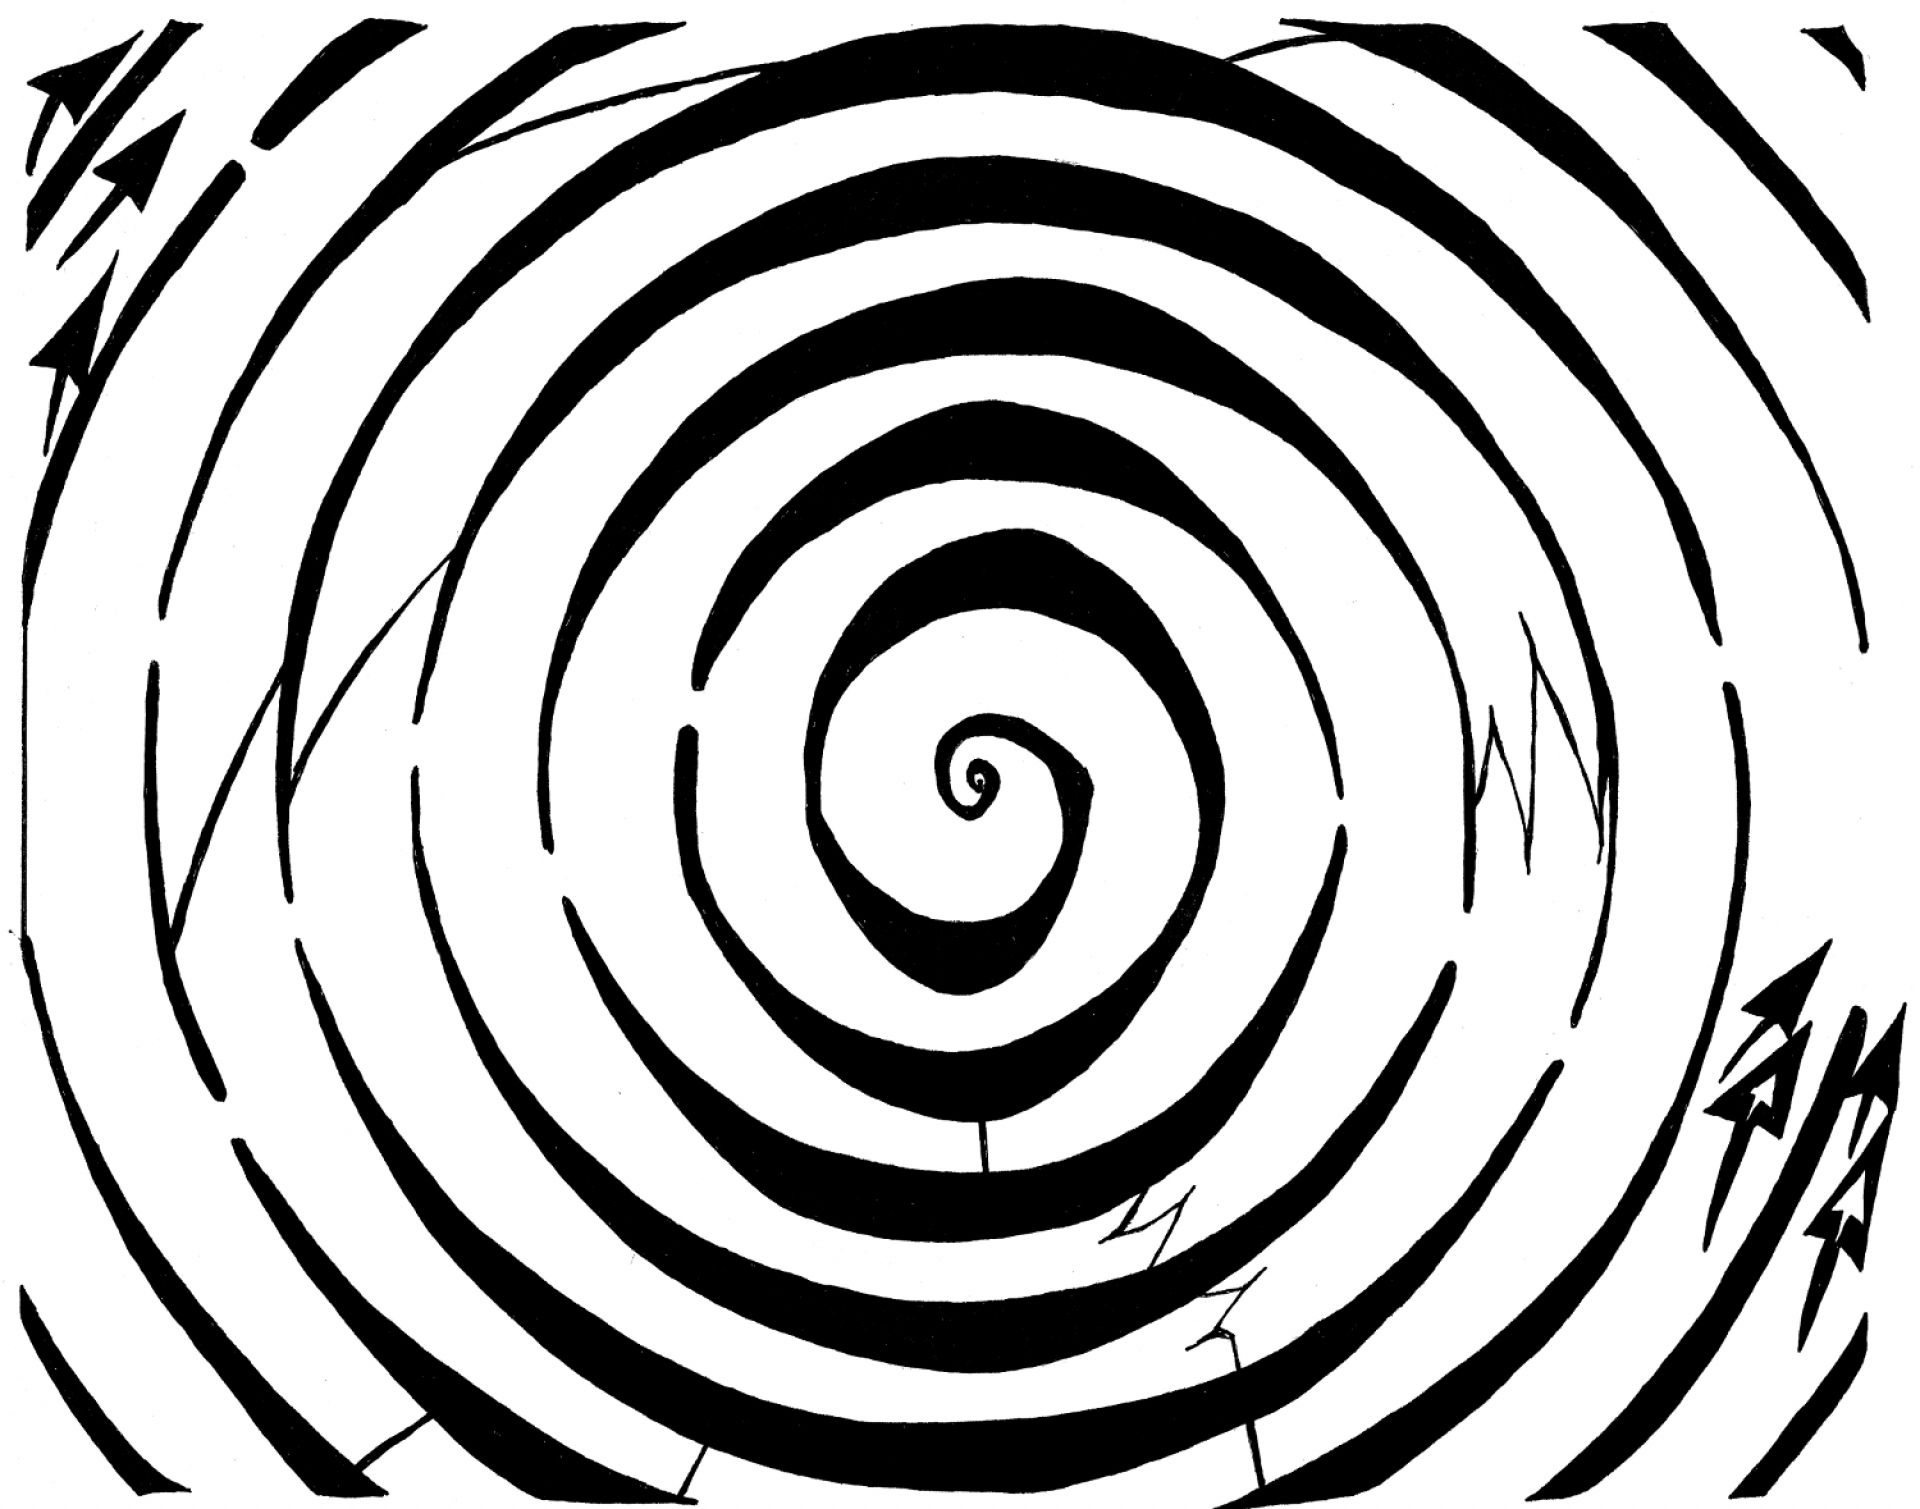 optical illusion maze illusions coloring spiral printable pages eliptical dopler clipart yonatan frimer awesome eye mazes drawing cliparts tiger artists